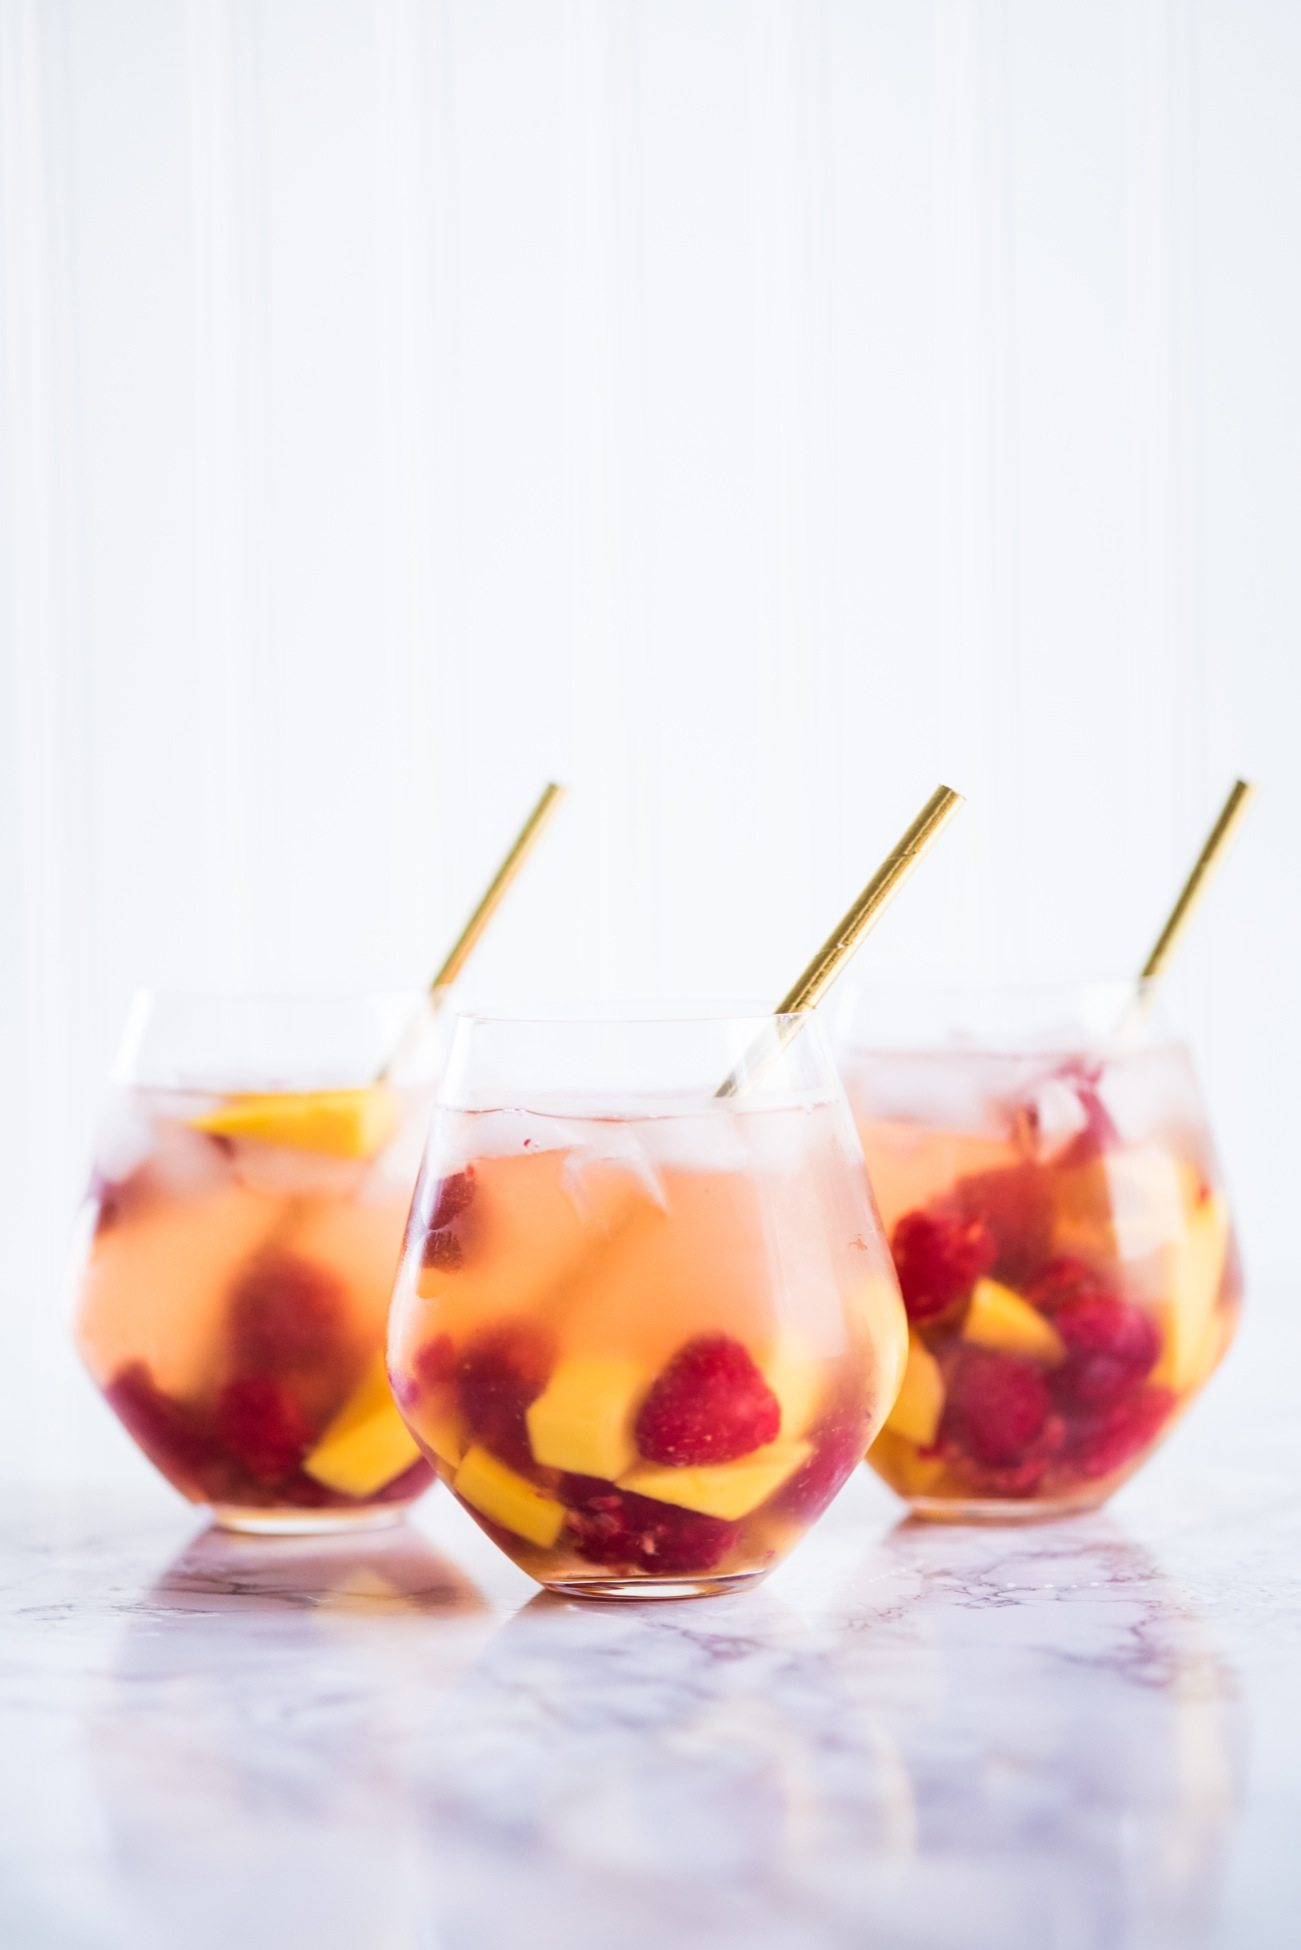 Sparkling Summer Solstice Sangria Recipe | Entertaining tips, cocktail recipes, party ideas, summer solstice ideas and more from @cydconverse